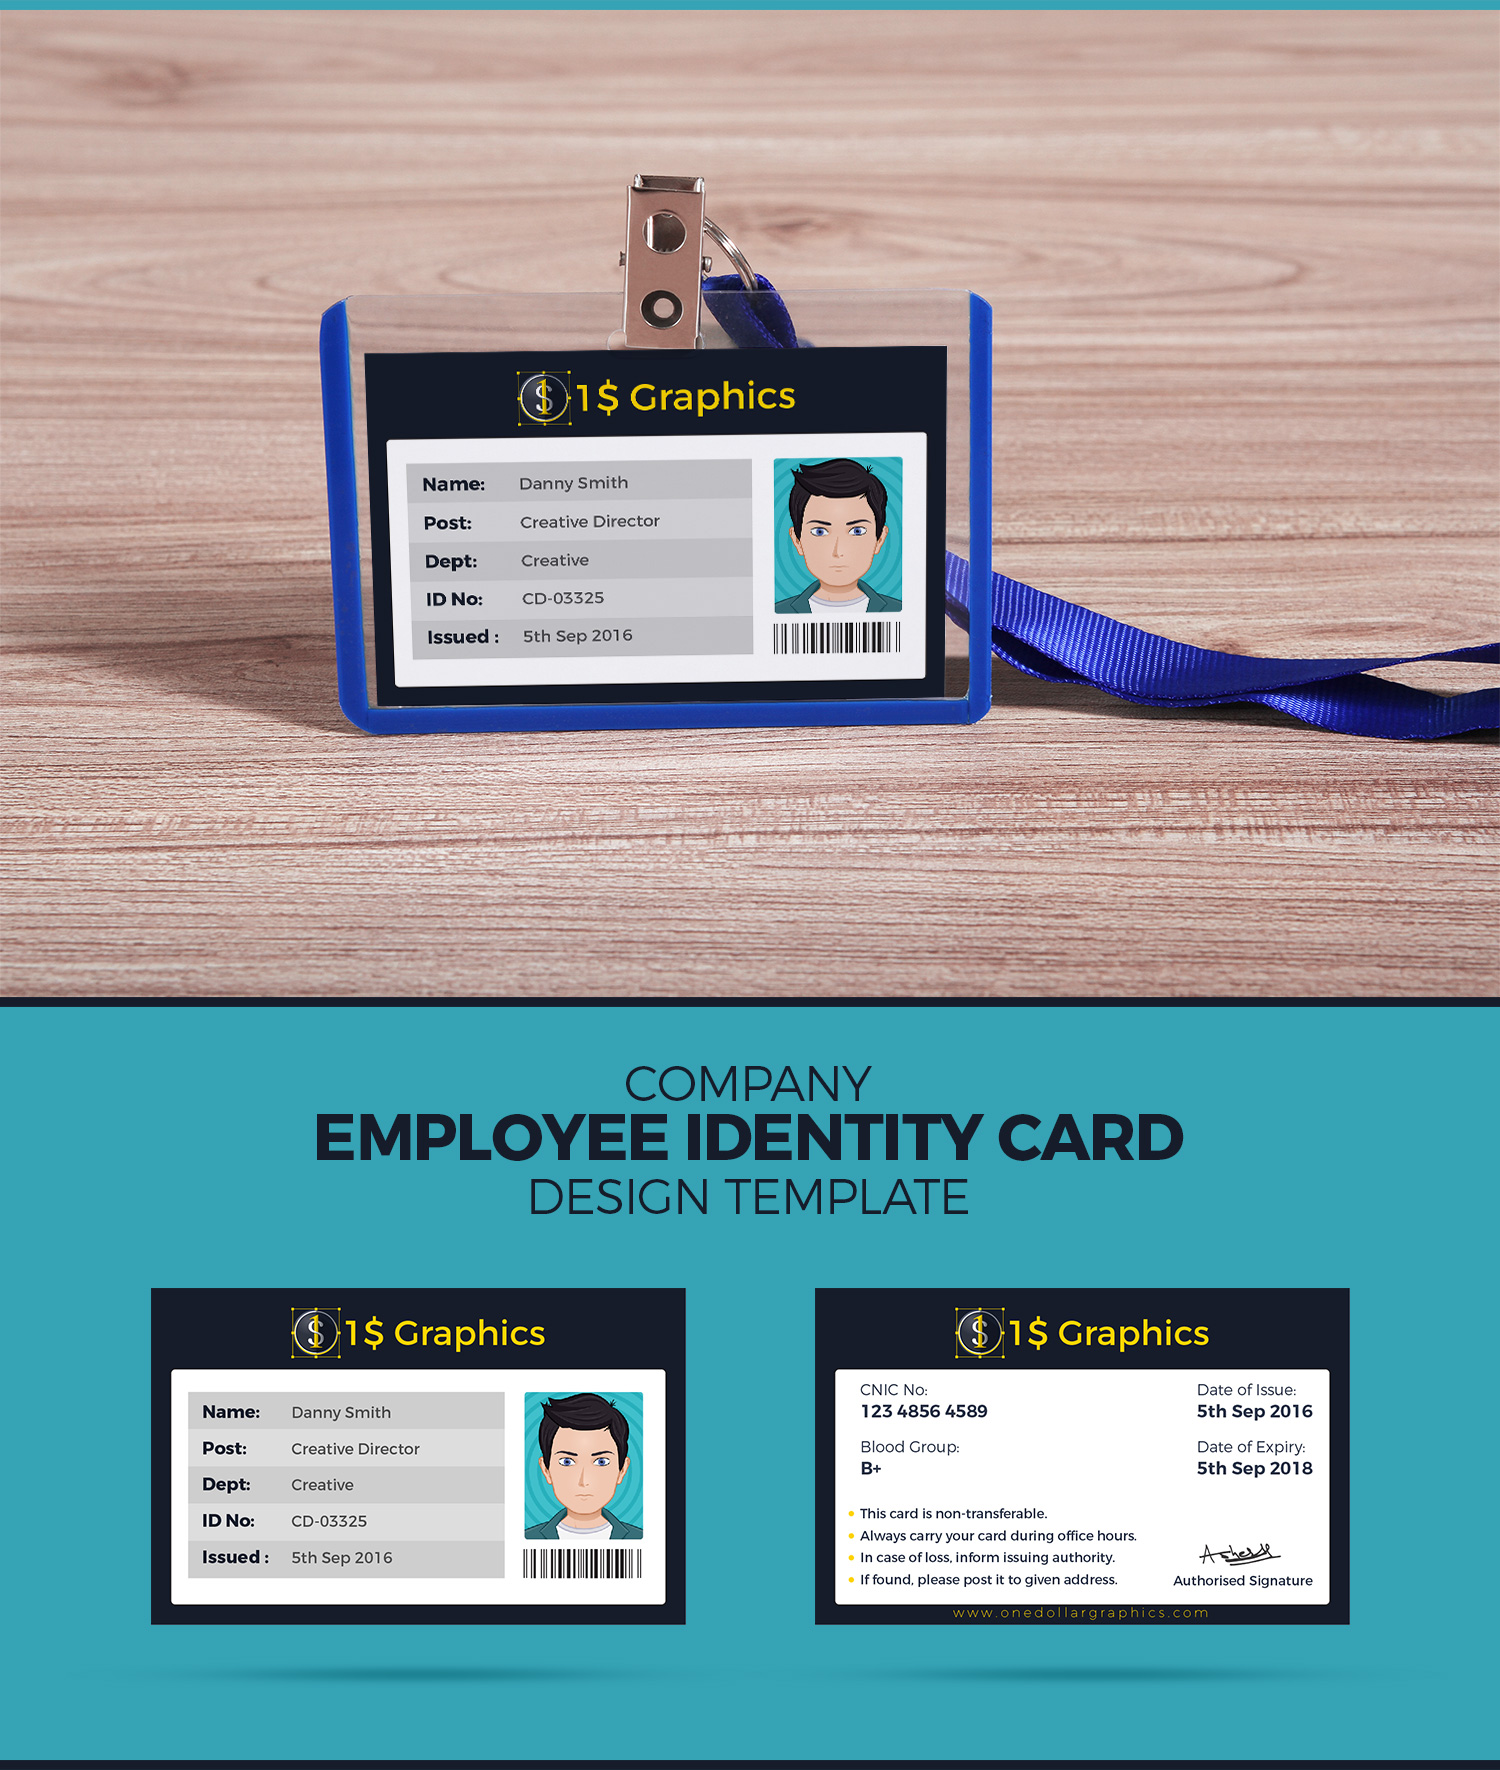 company-employee-identity-card-design-template-and-mock-up-psd-2